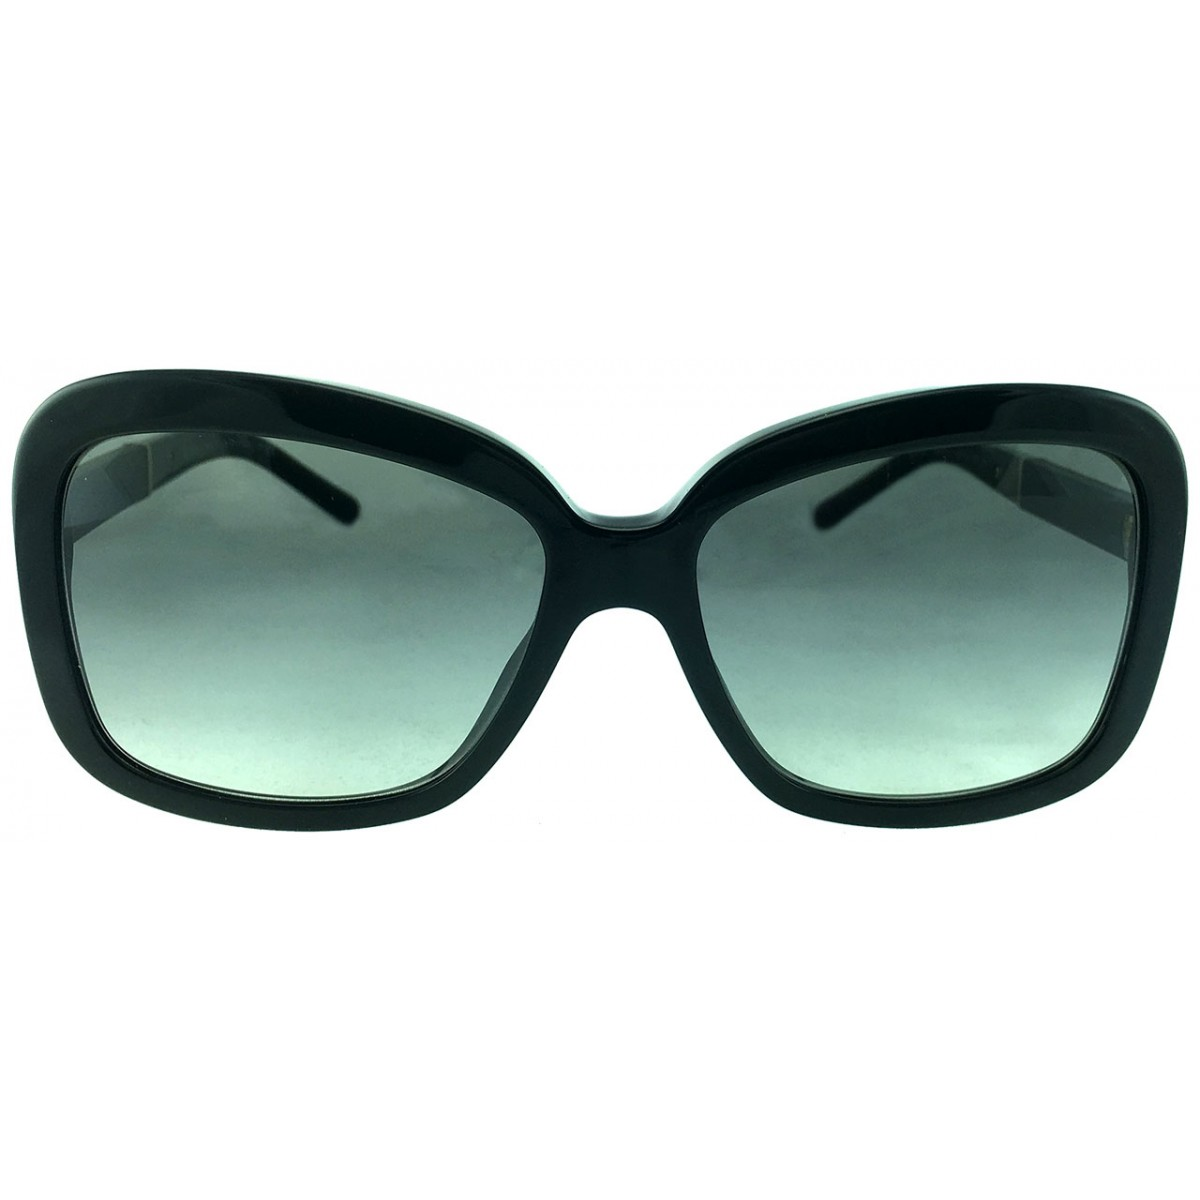 c9ad1f4b10ad Online Eyeglasses with Customer Service Center in California ...